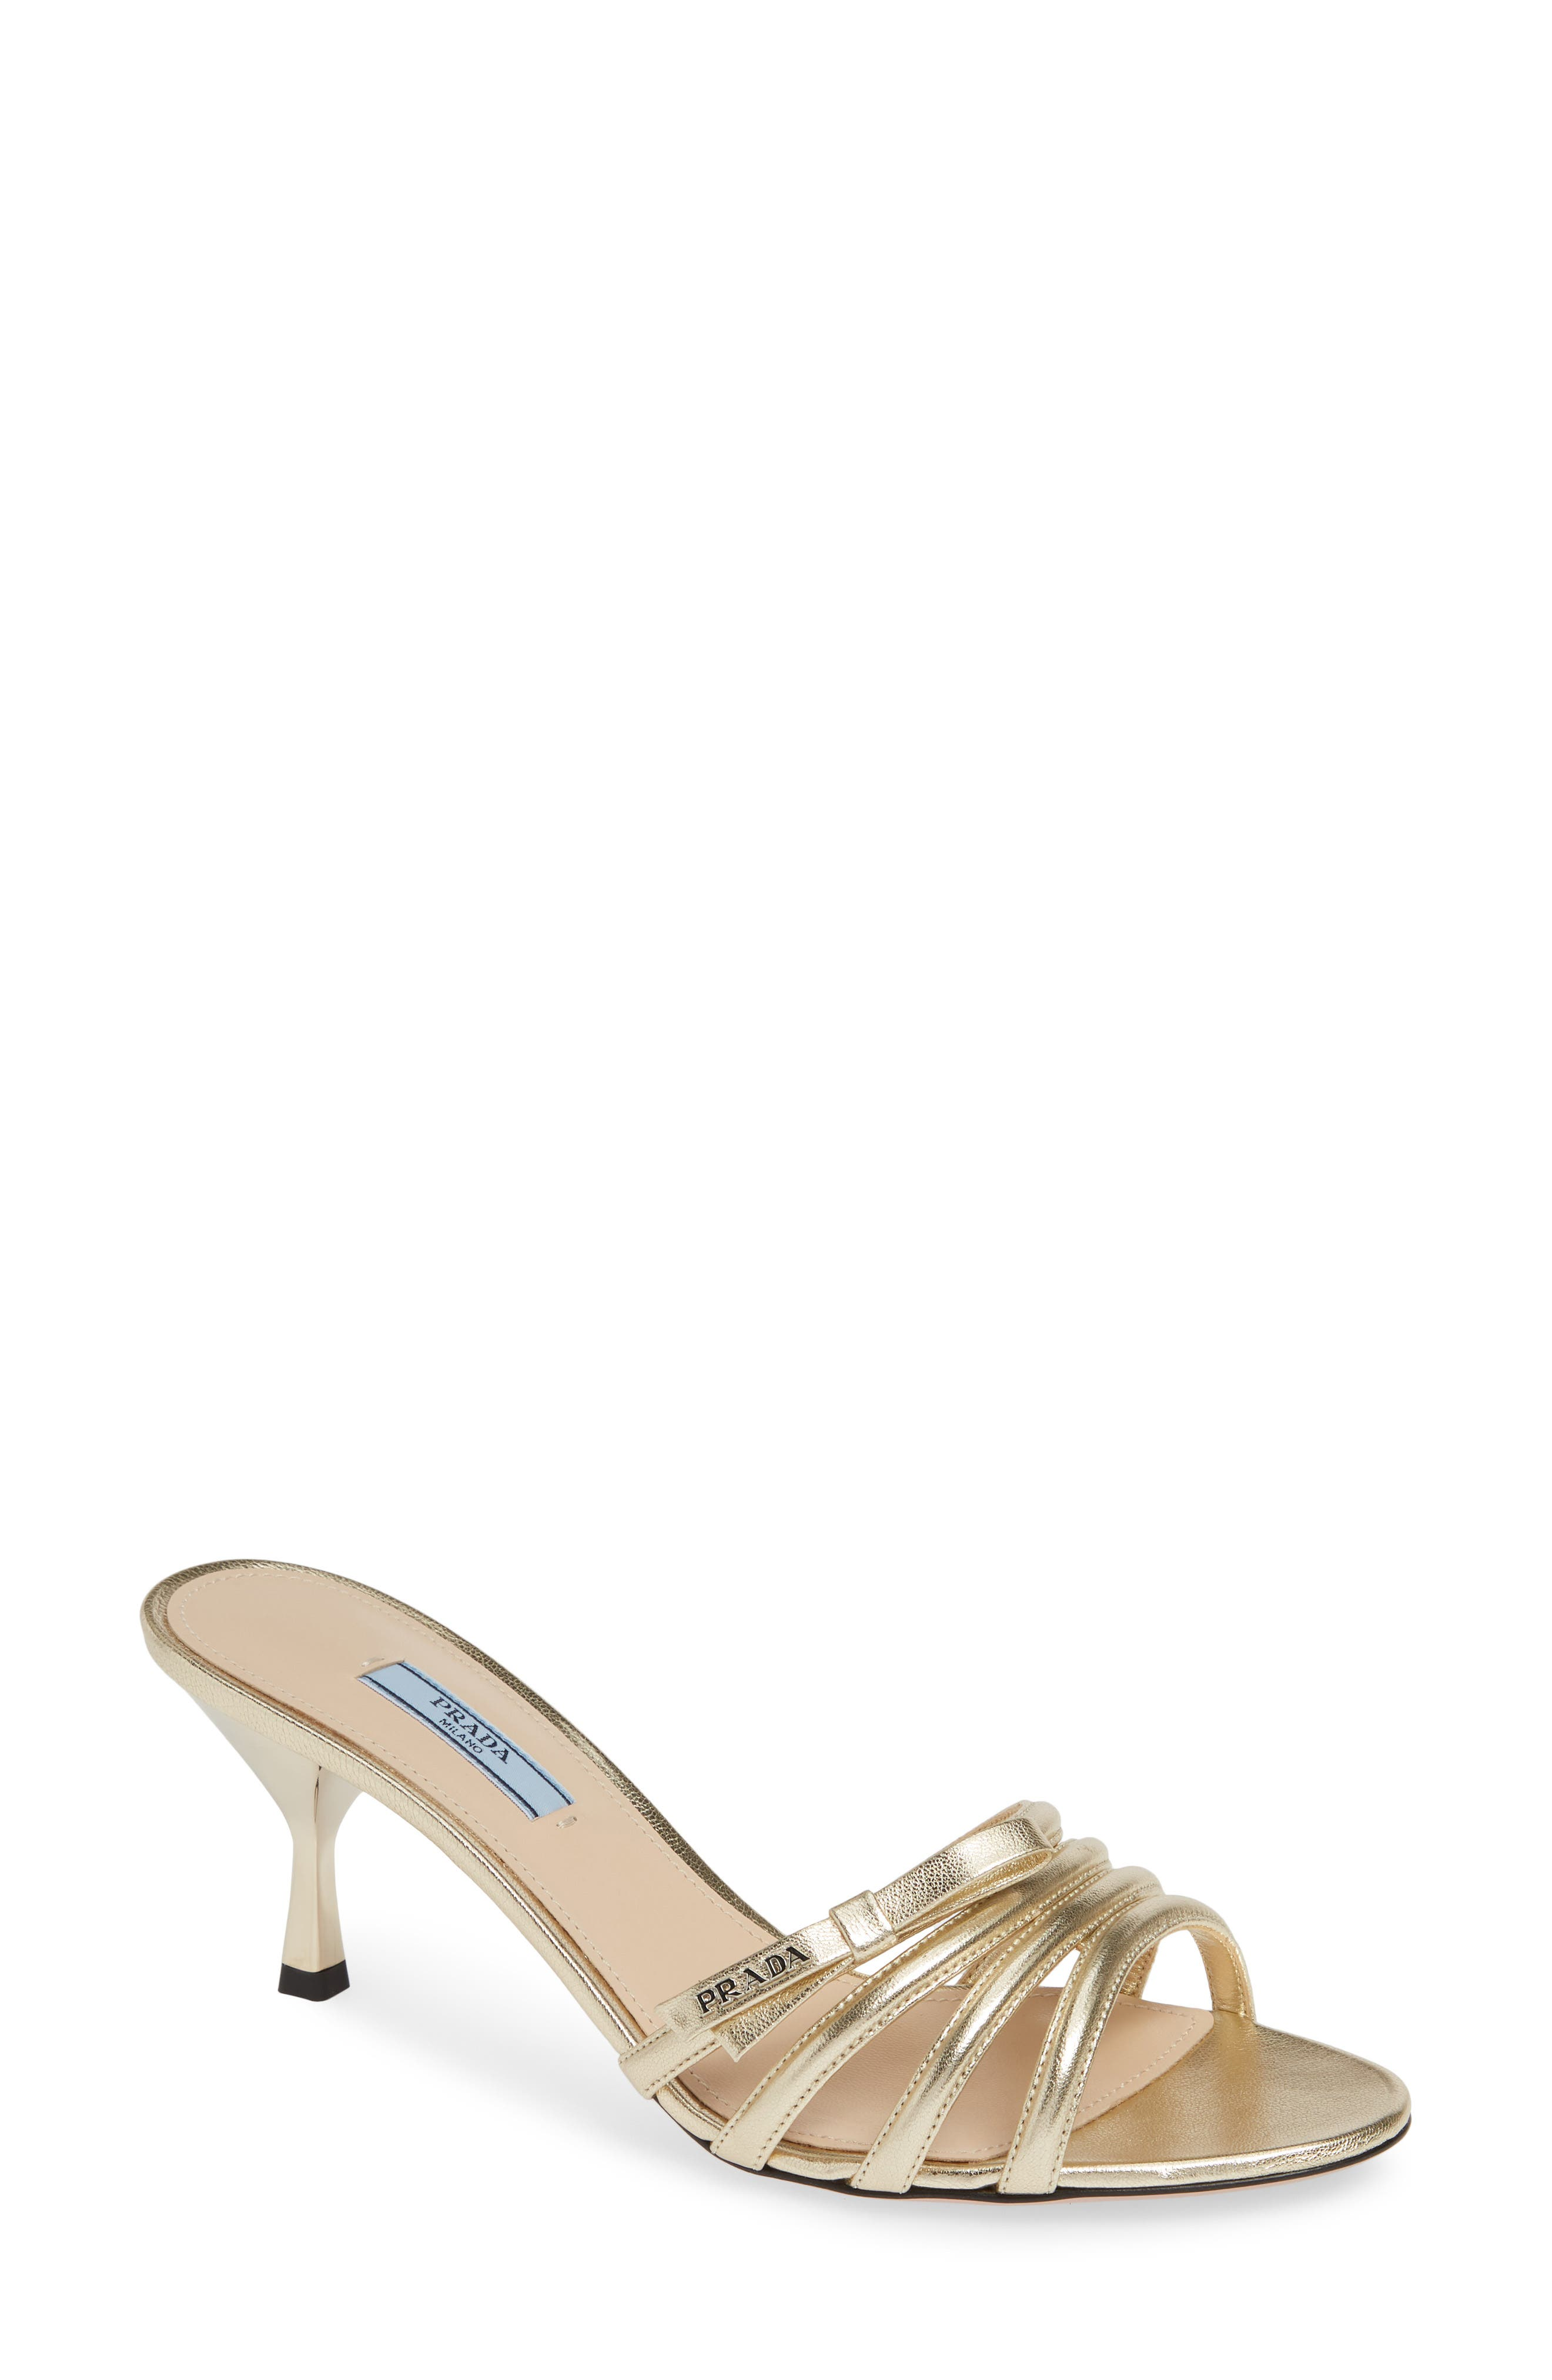 PRADA Metallic Slide Sandal, Main, color, PIRITE